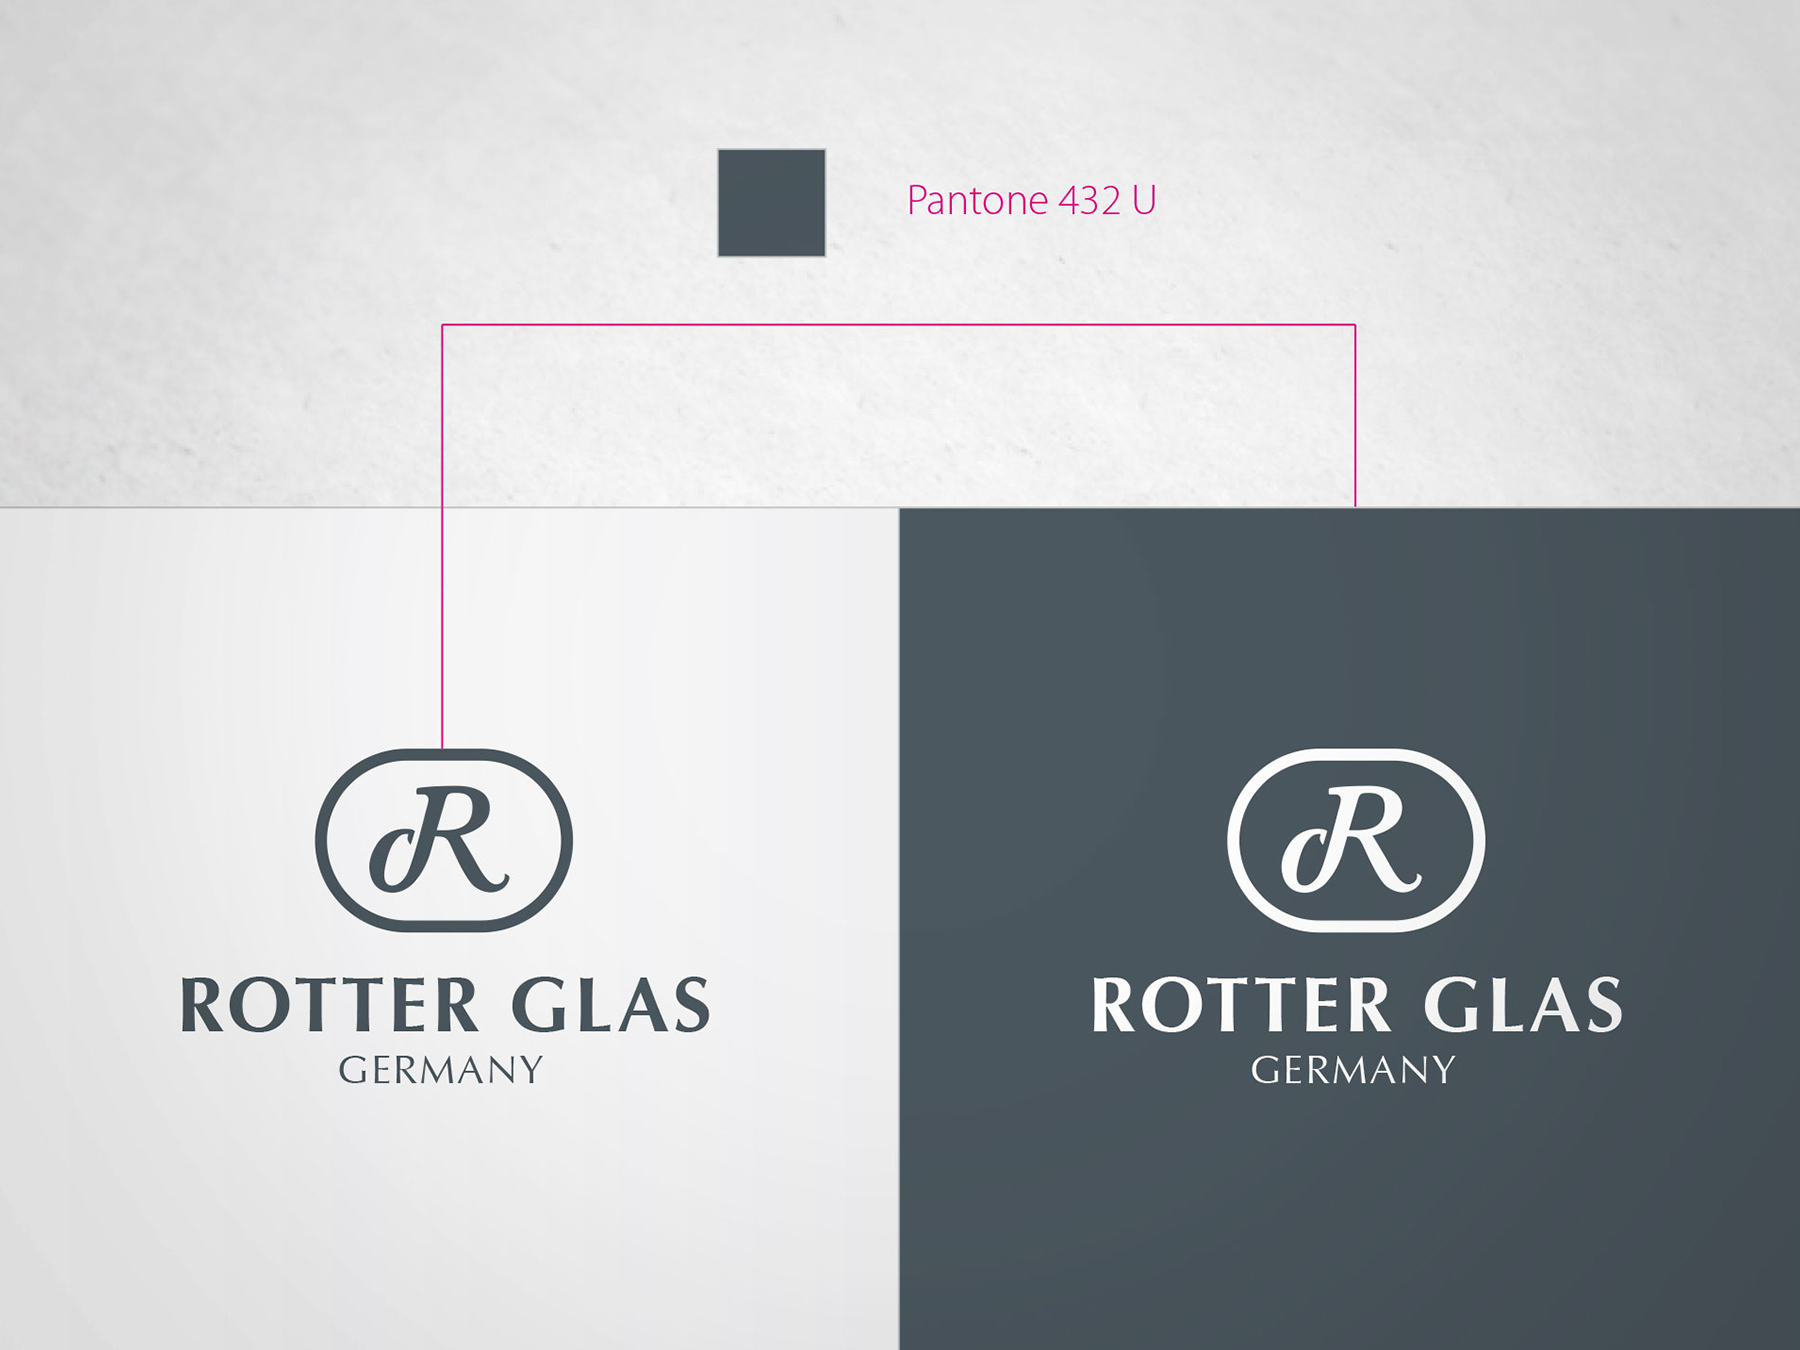 AuD Referenzen Rotter Glas Logo Manual